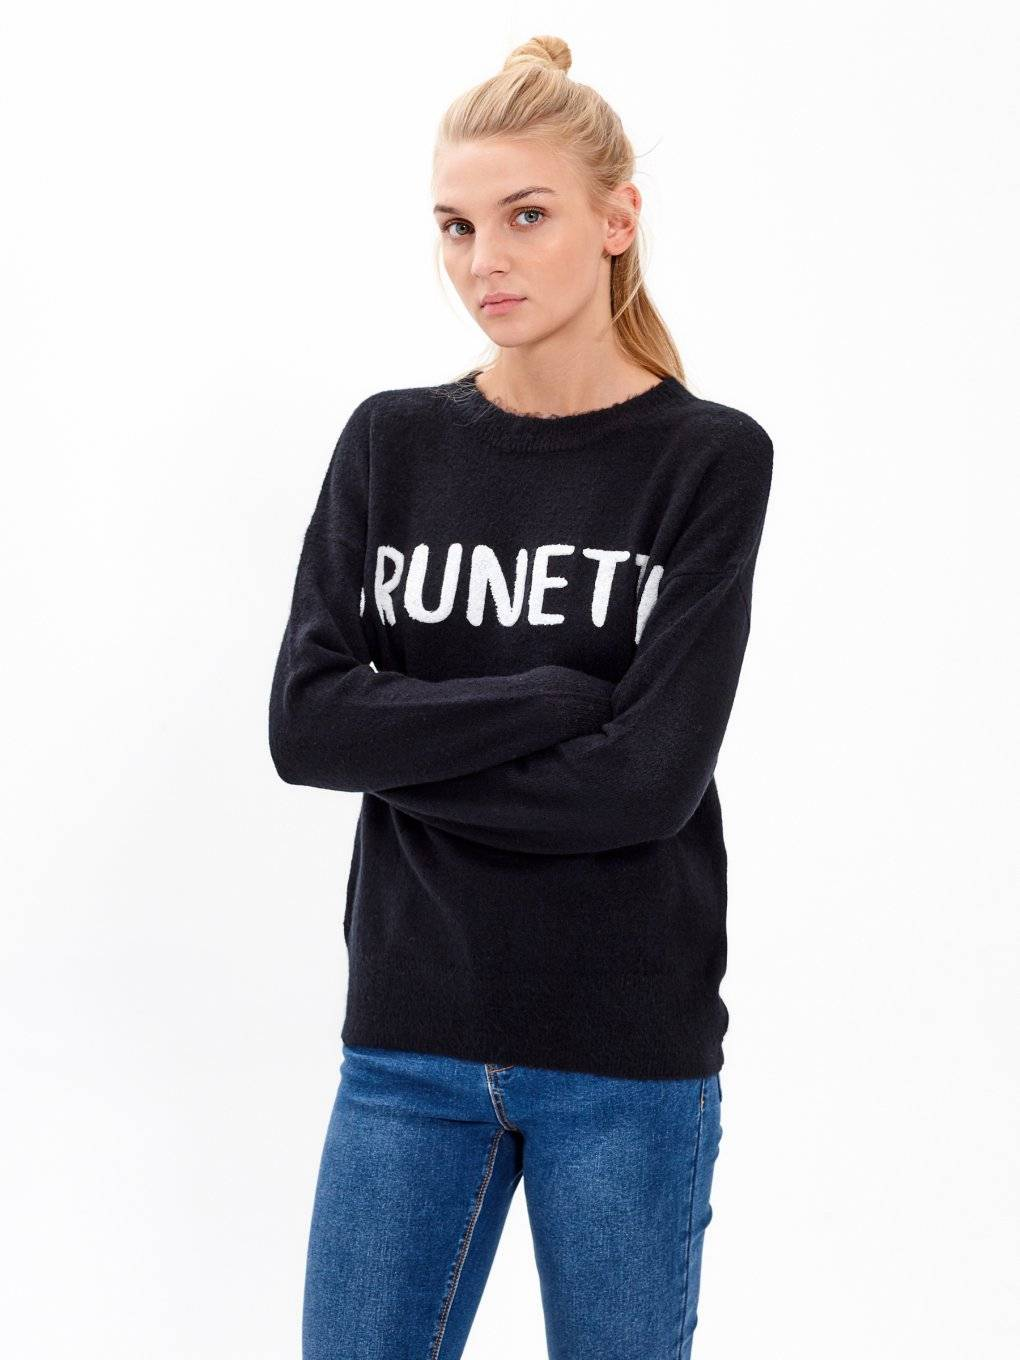 JUMPER WITH SLOGAN